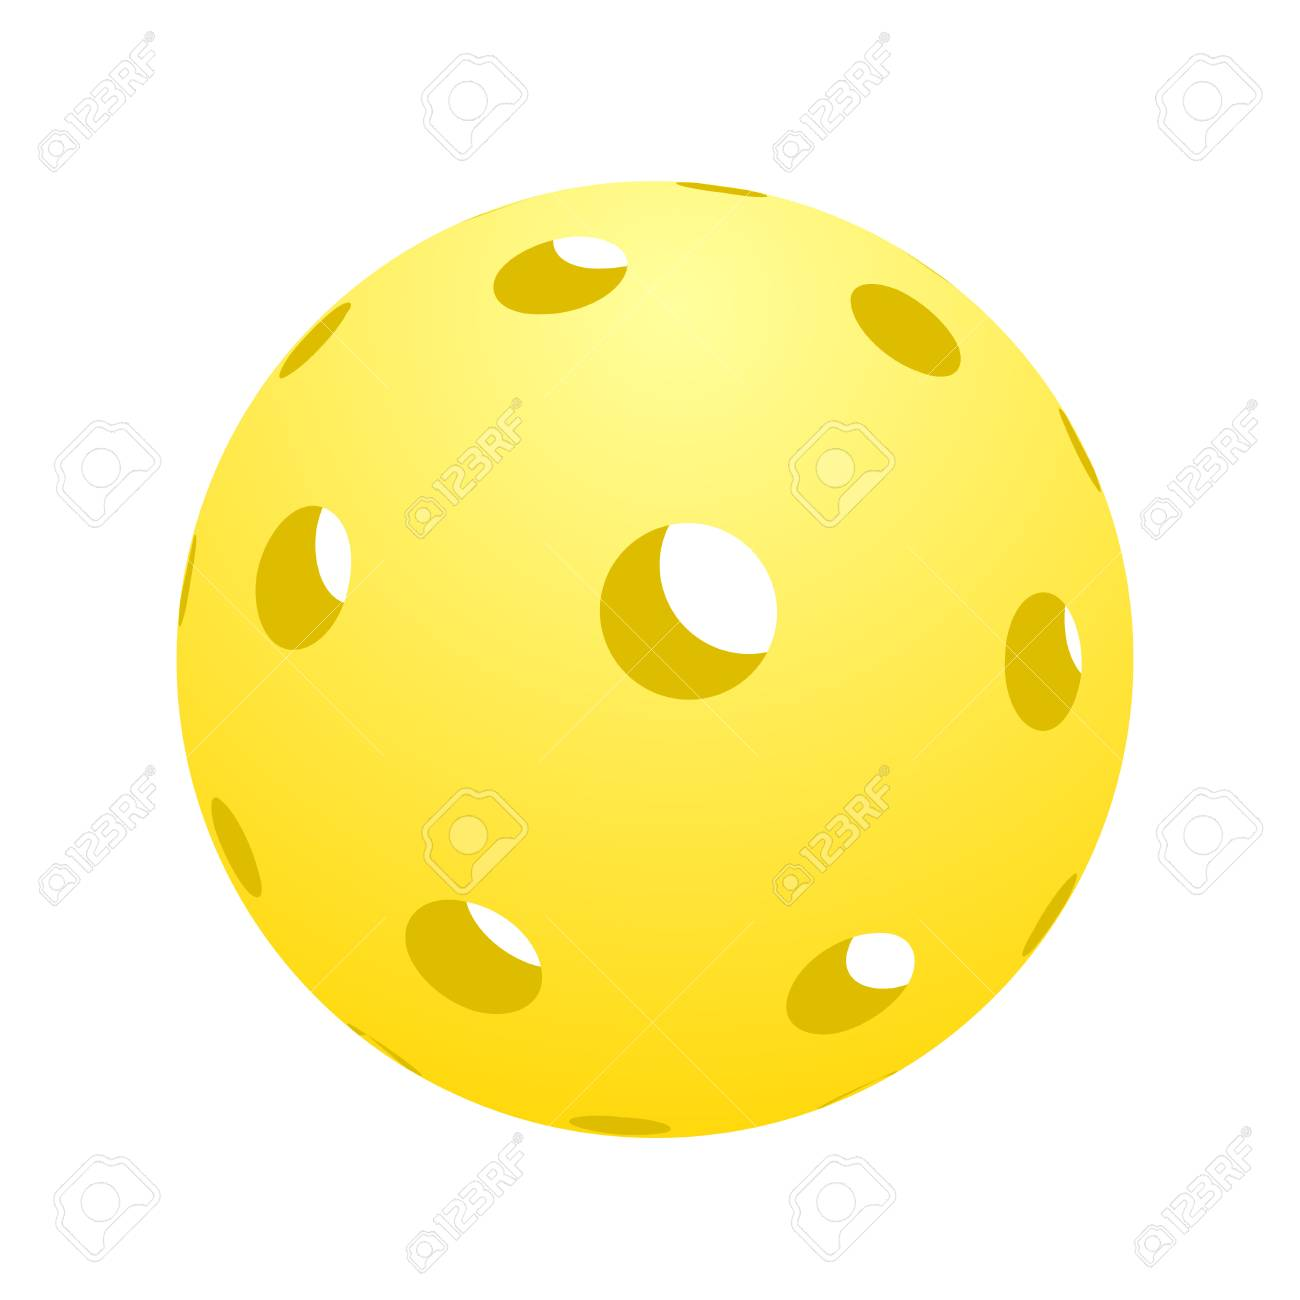 ball of pickle ball icon illustration. - 93840616